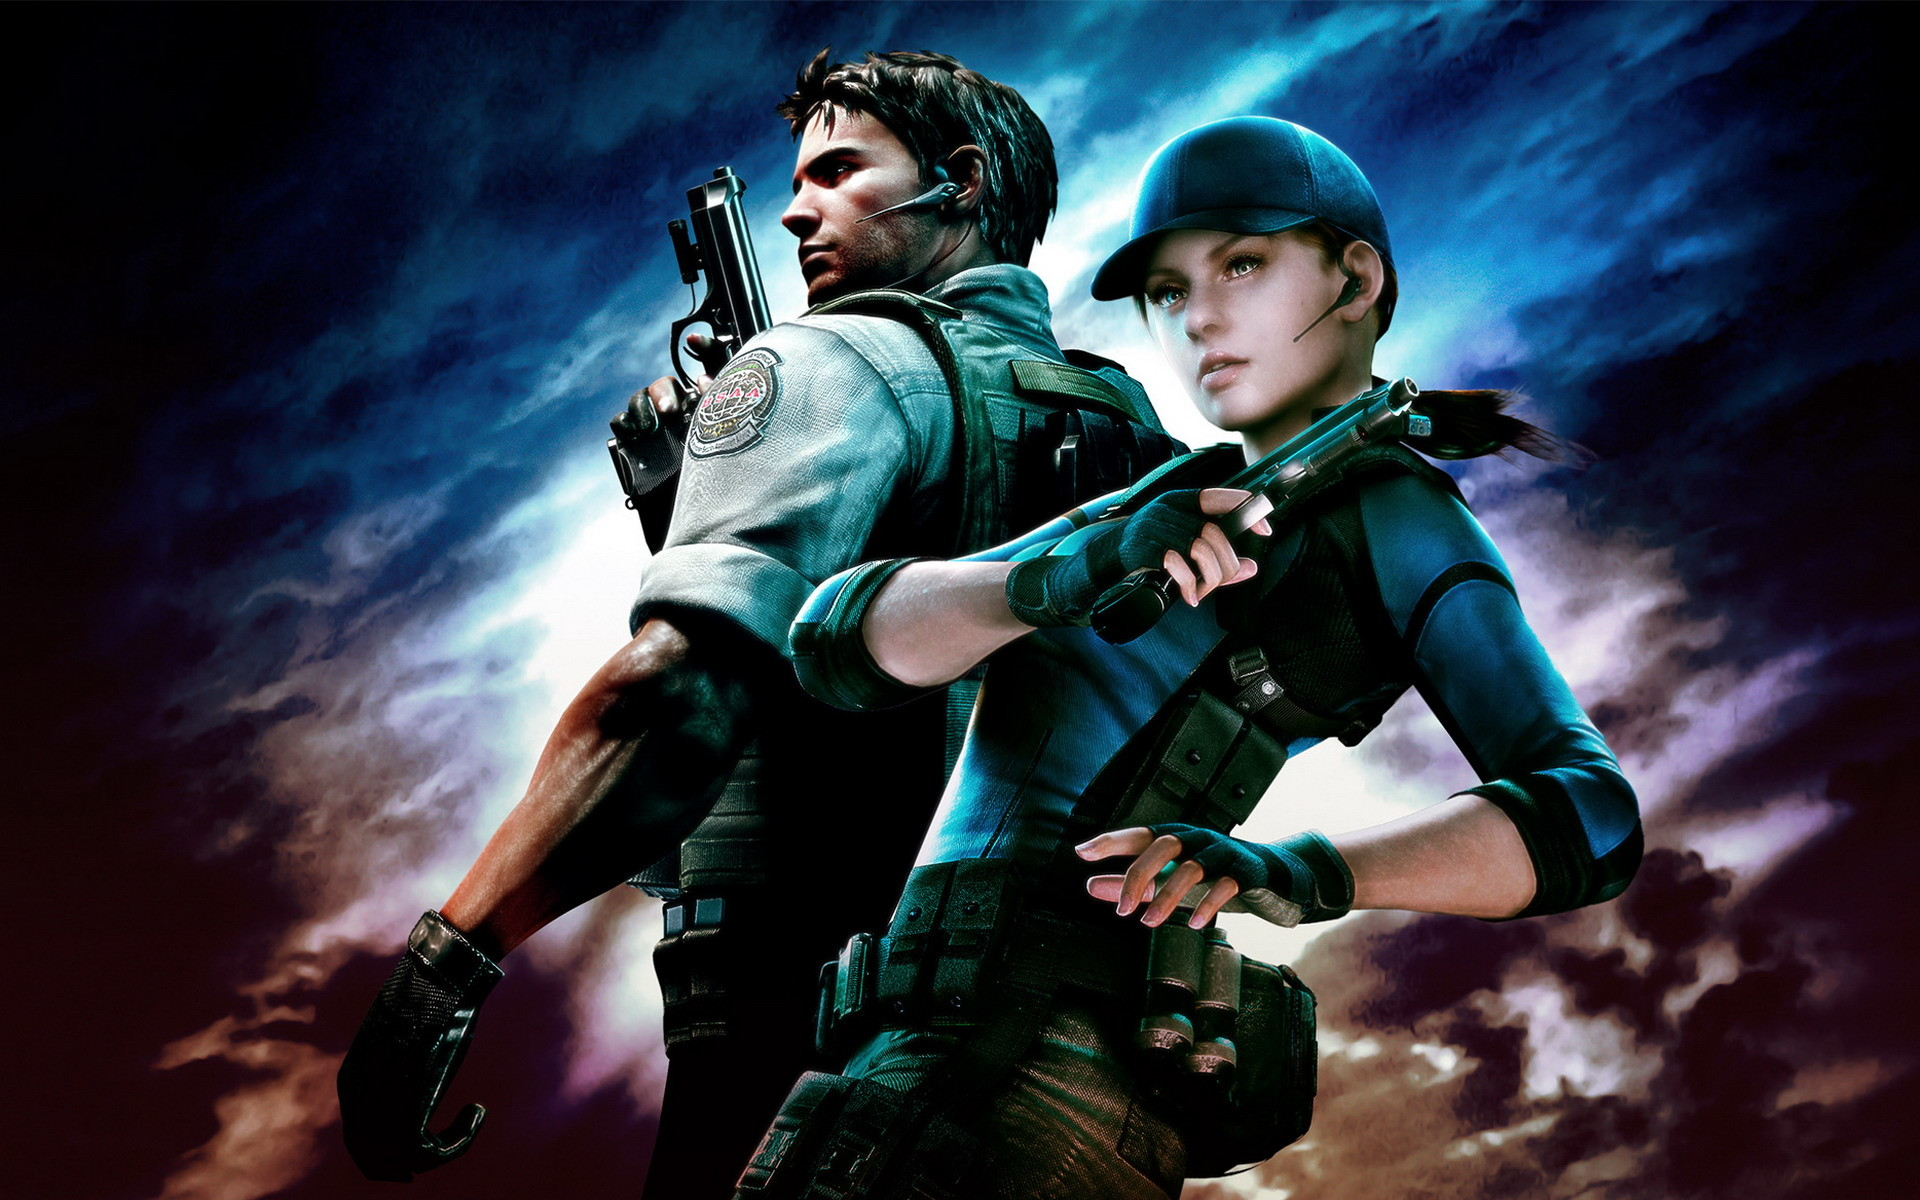 1920x1200 Resident evil 5 game wallpapers hd wallpapers